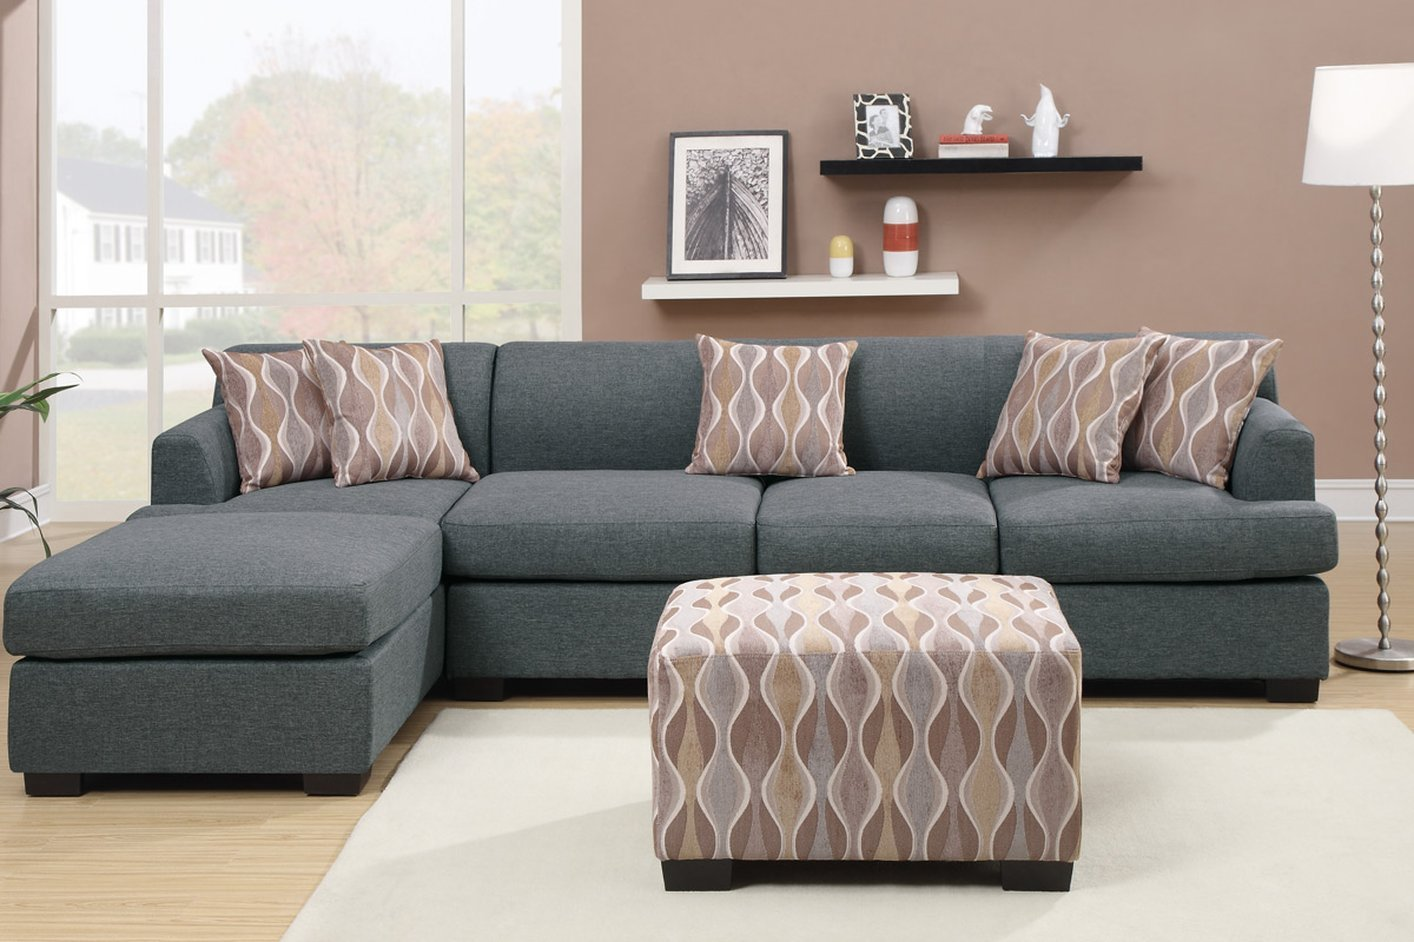 Grey Fabric Chaise Lounge Steal A Sofa Furniture Outlet